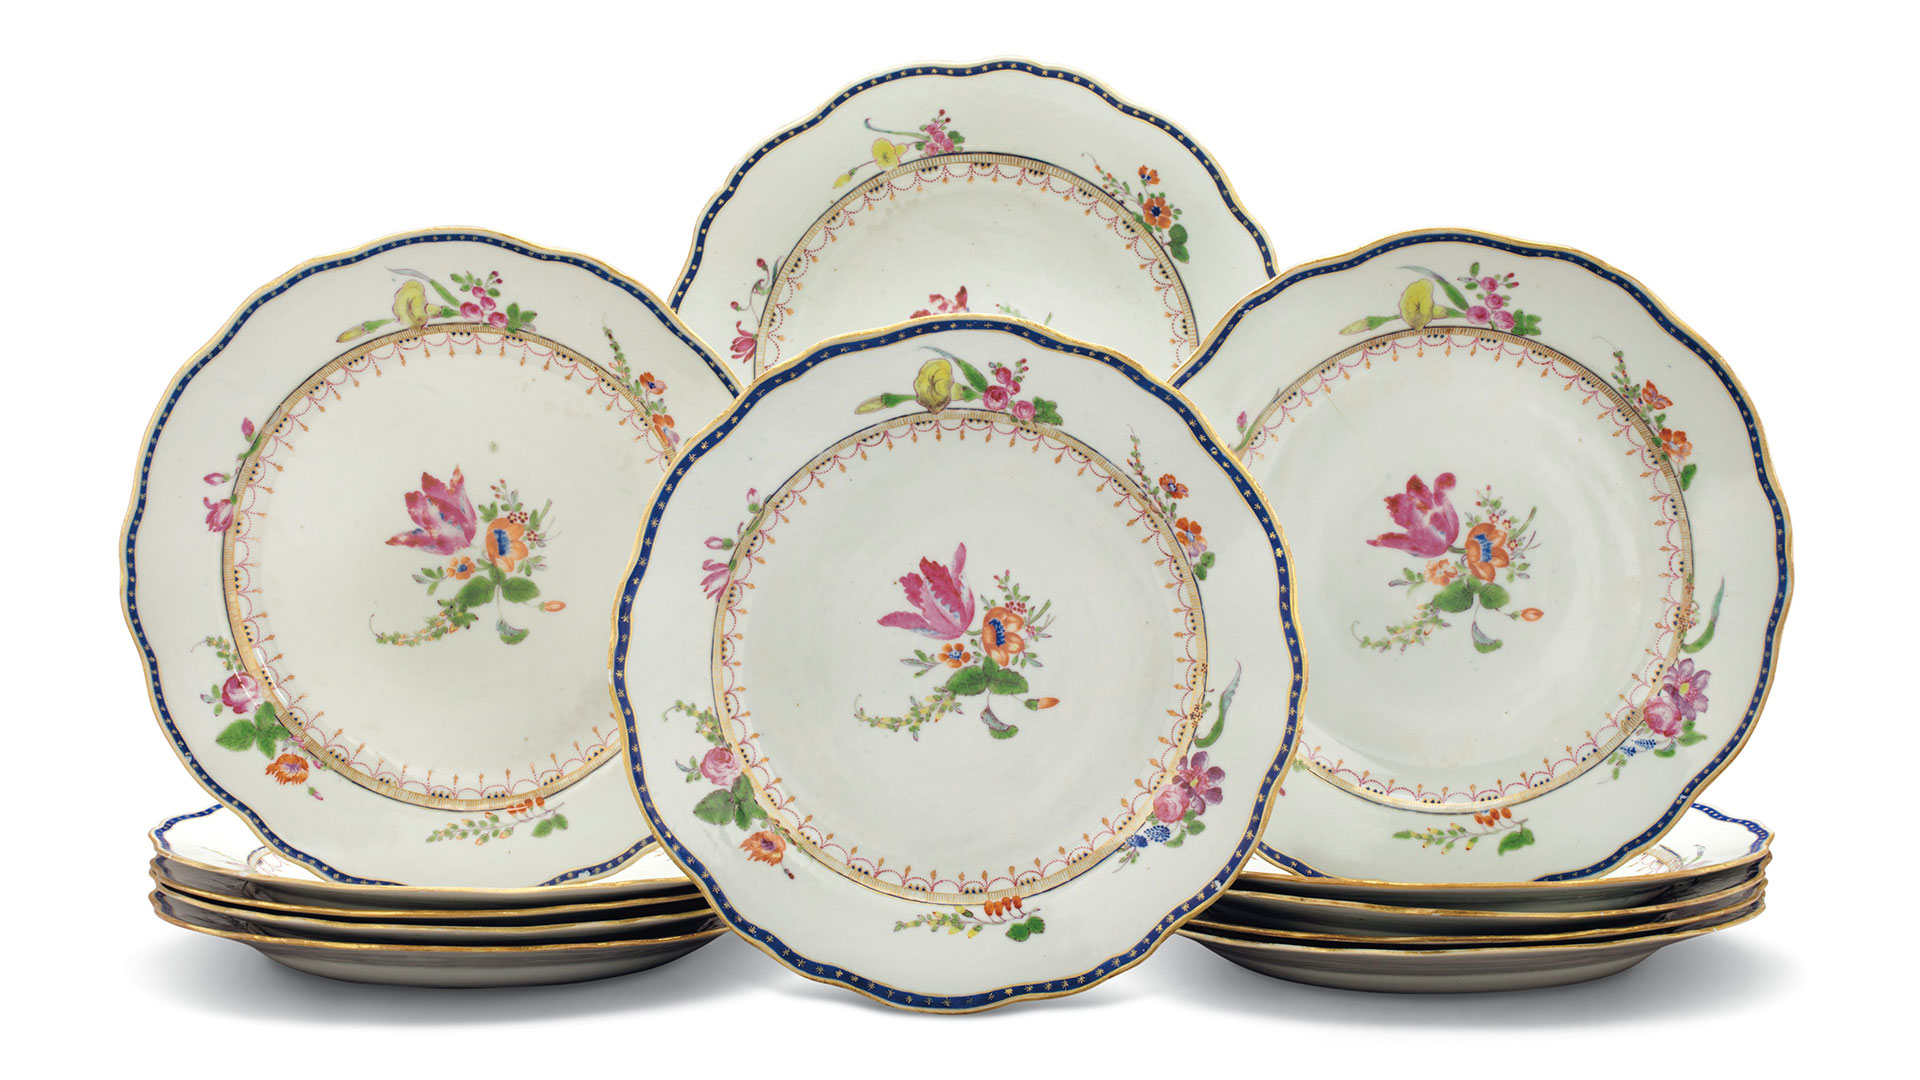 11 Chinese Famille-rose side plates, circa 1770.